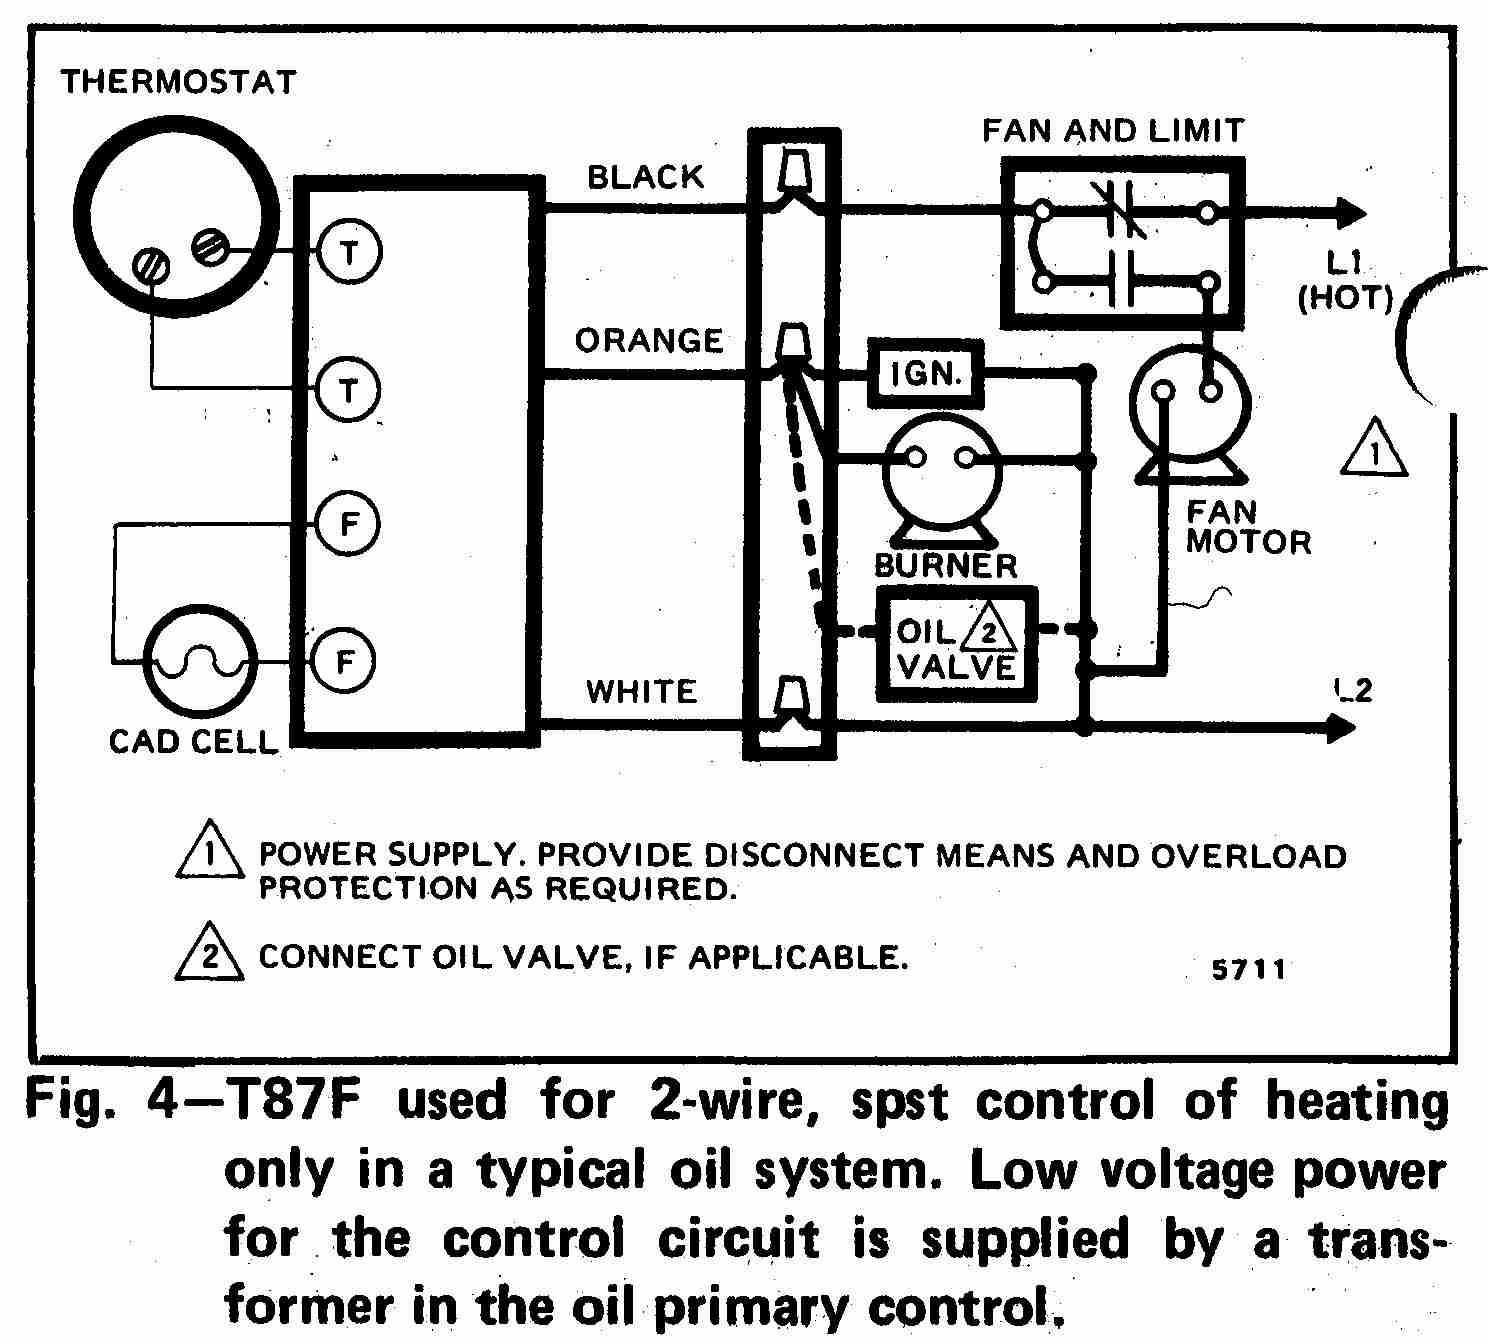 Honeywell Thermostat Low Voltage Wiring Diagram - Wiring Diagram - Honeywell Thermostat Wiring Diagram